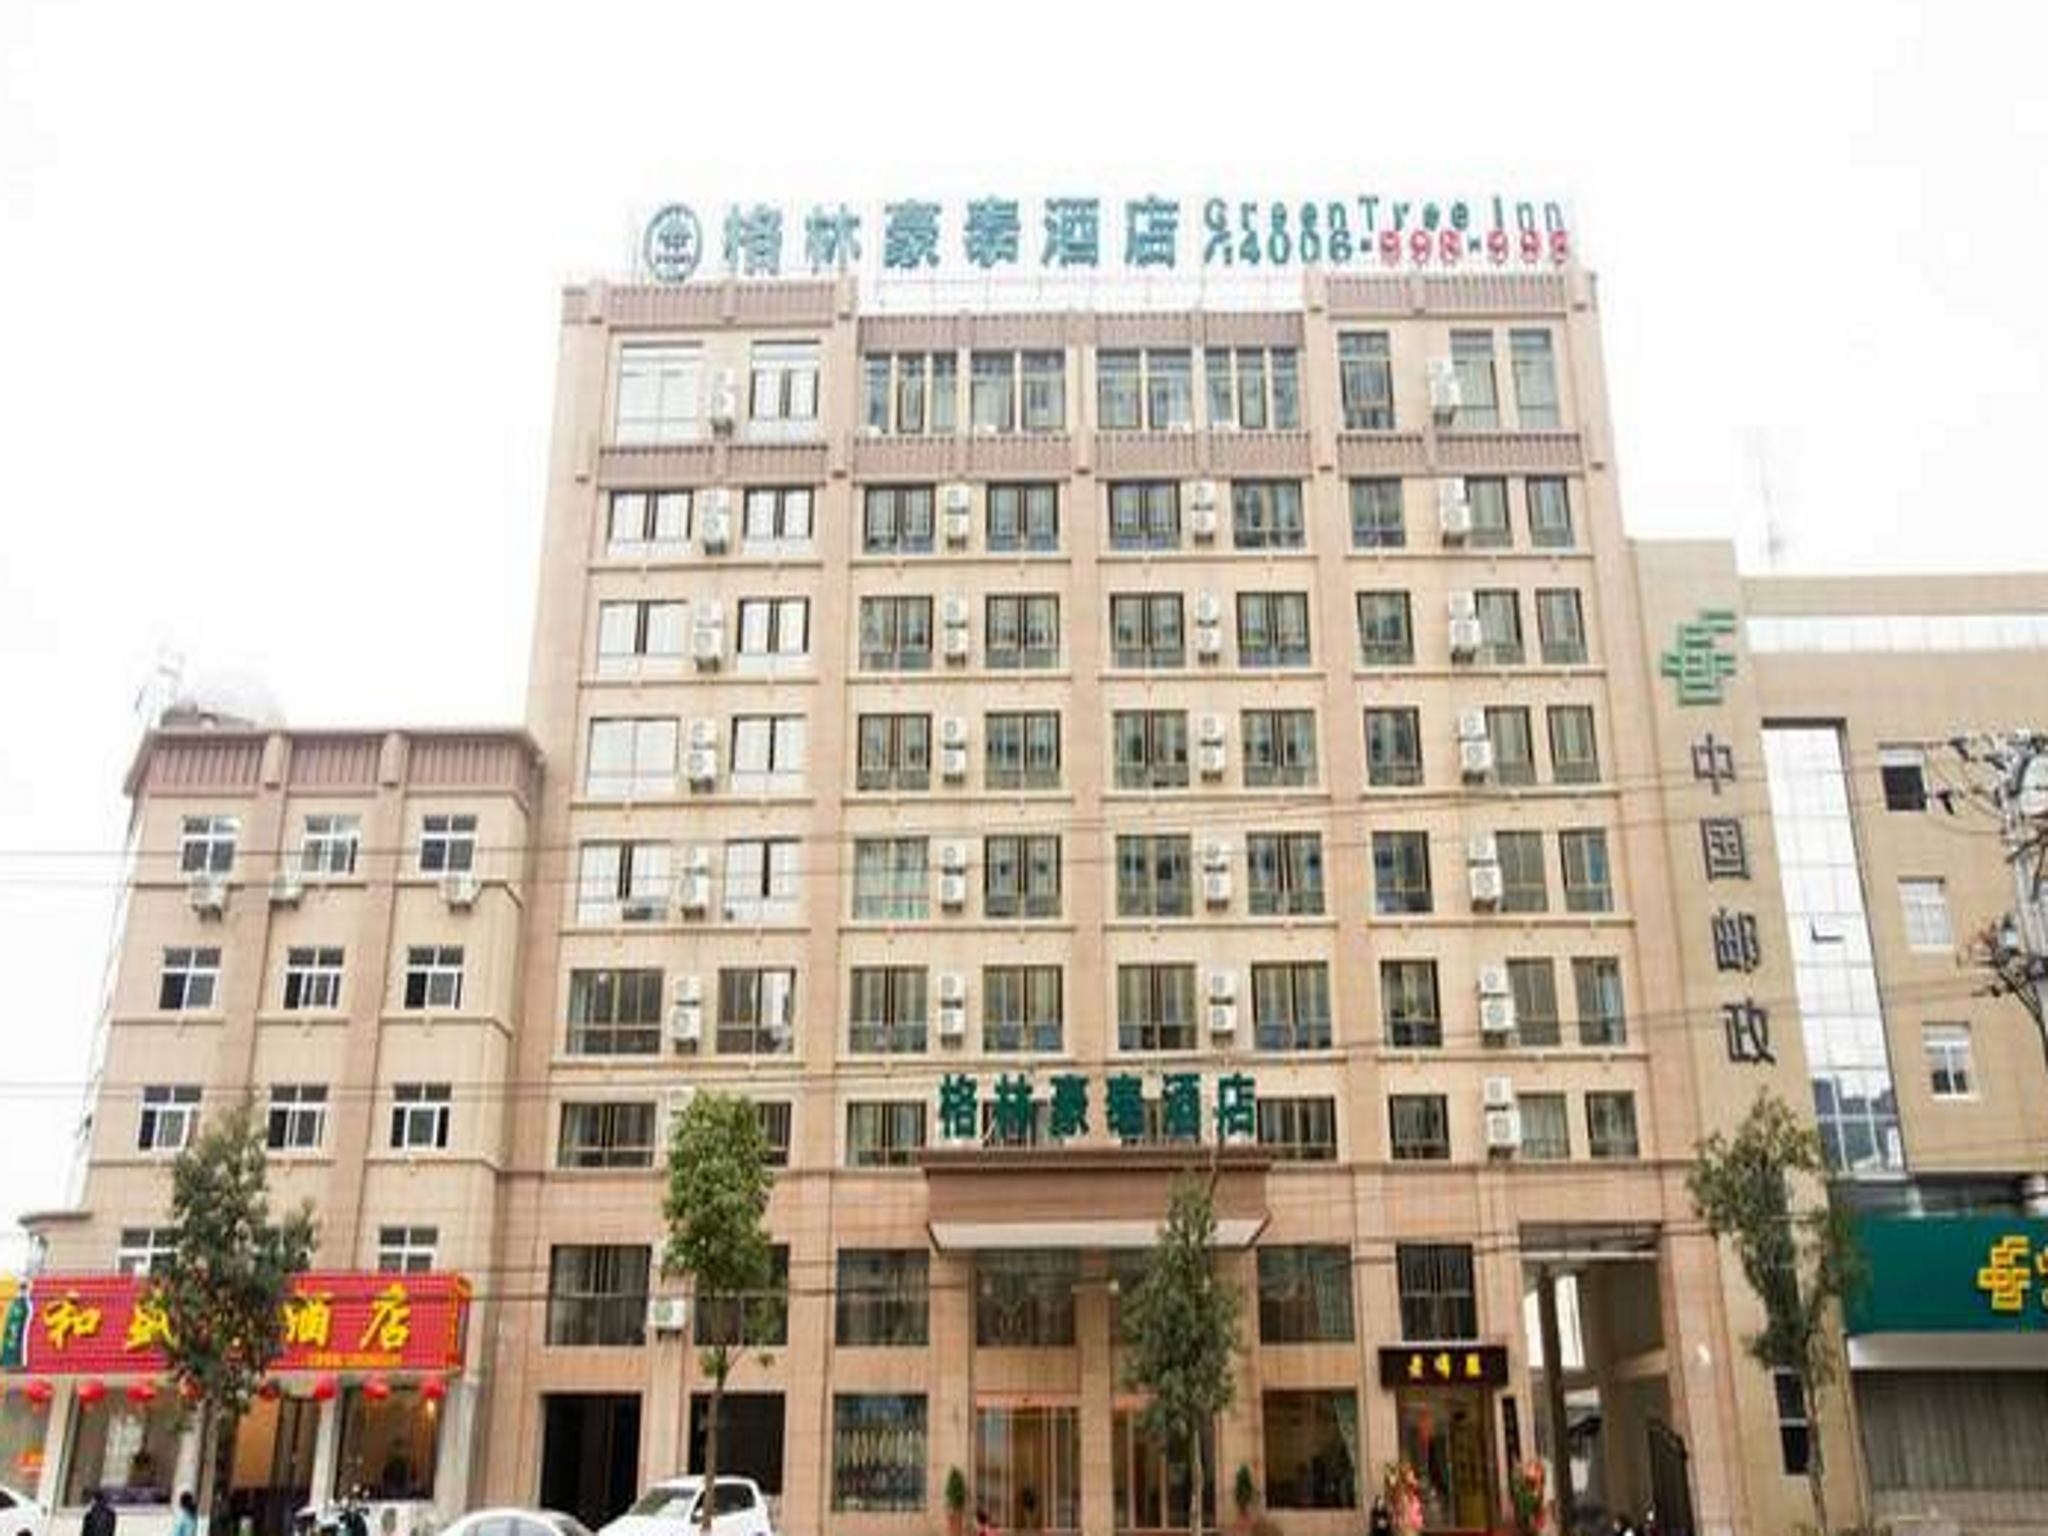 GreenTree Inn ChiZhou QinGYAng Miaoqian Road Rongxing Building Business Hotel, Chizhou